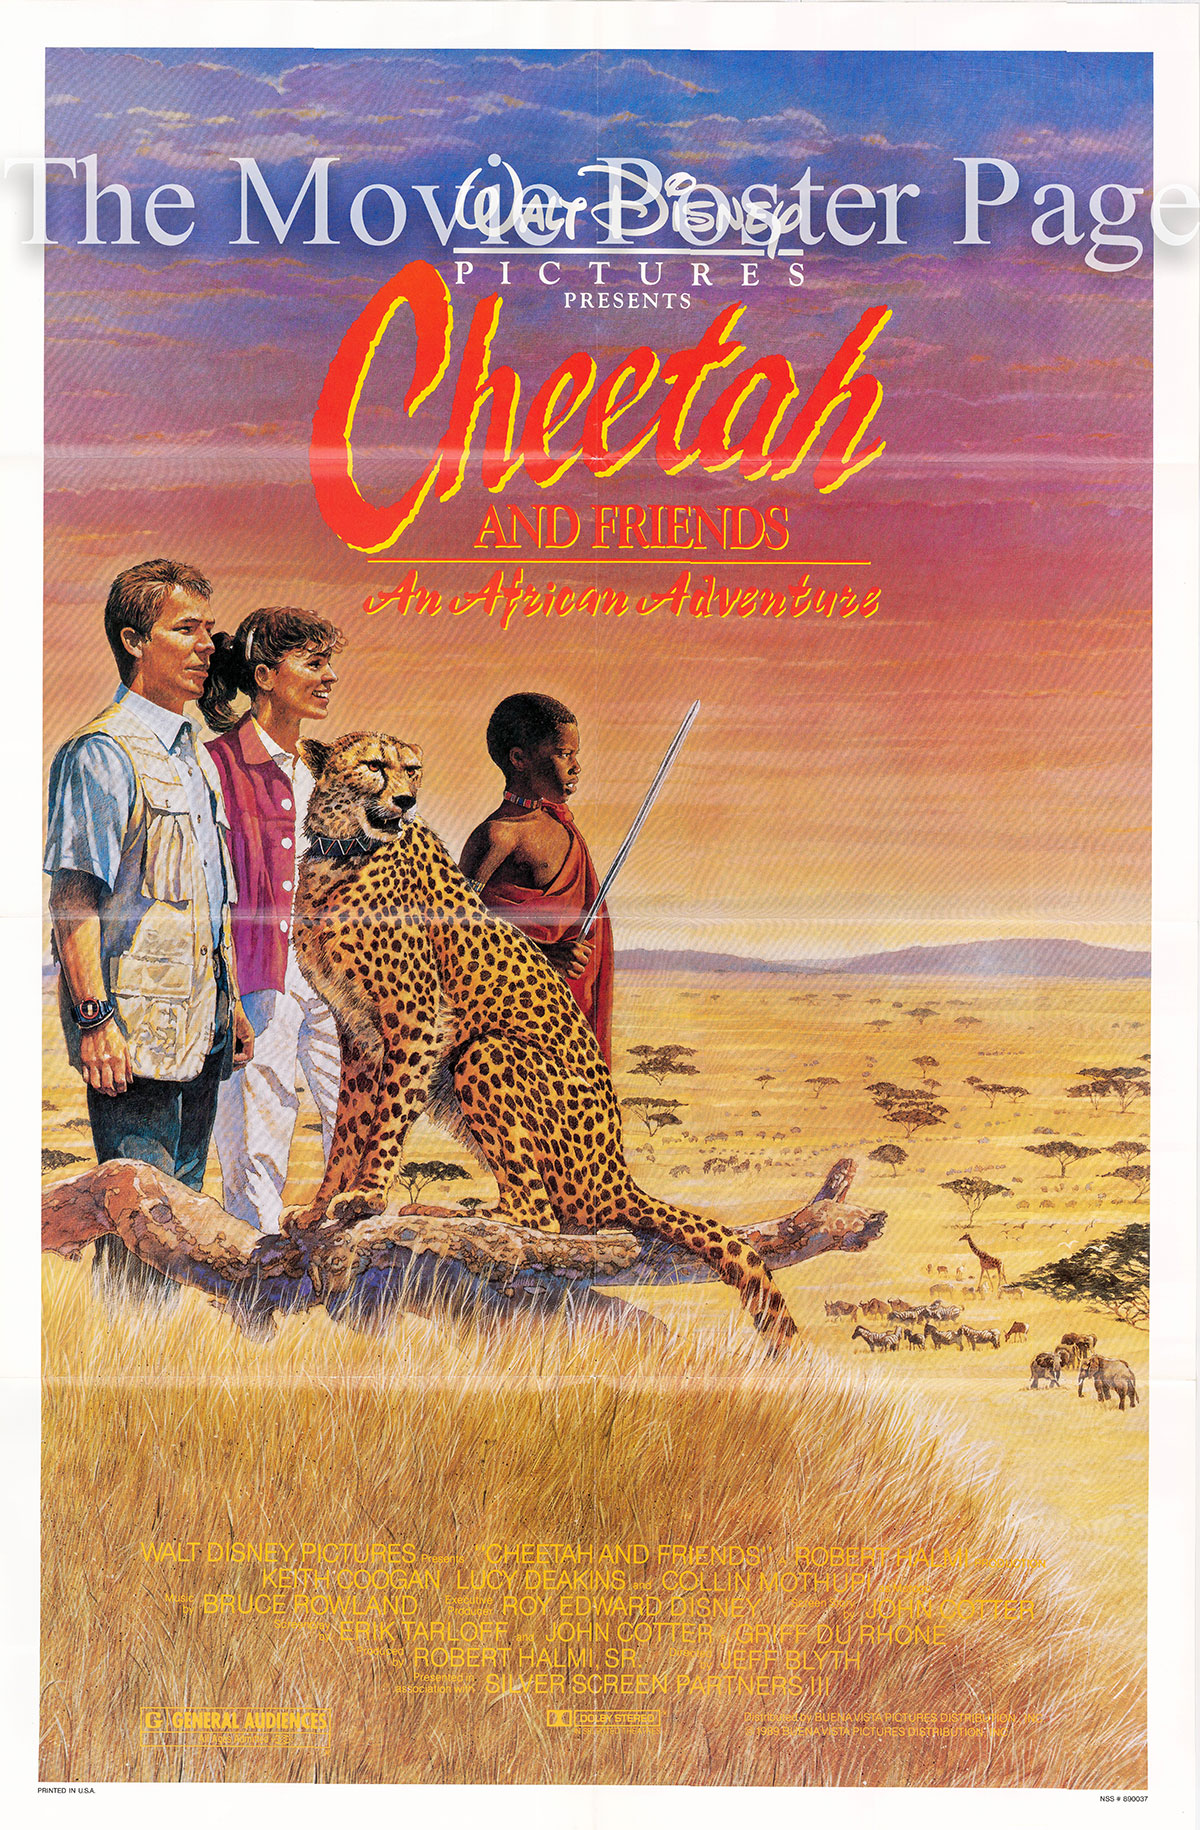 Pictured is a US promotional poster for the 1989 Jeff Blyth film Cheetah and Friends starring Keith Coogan.